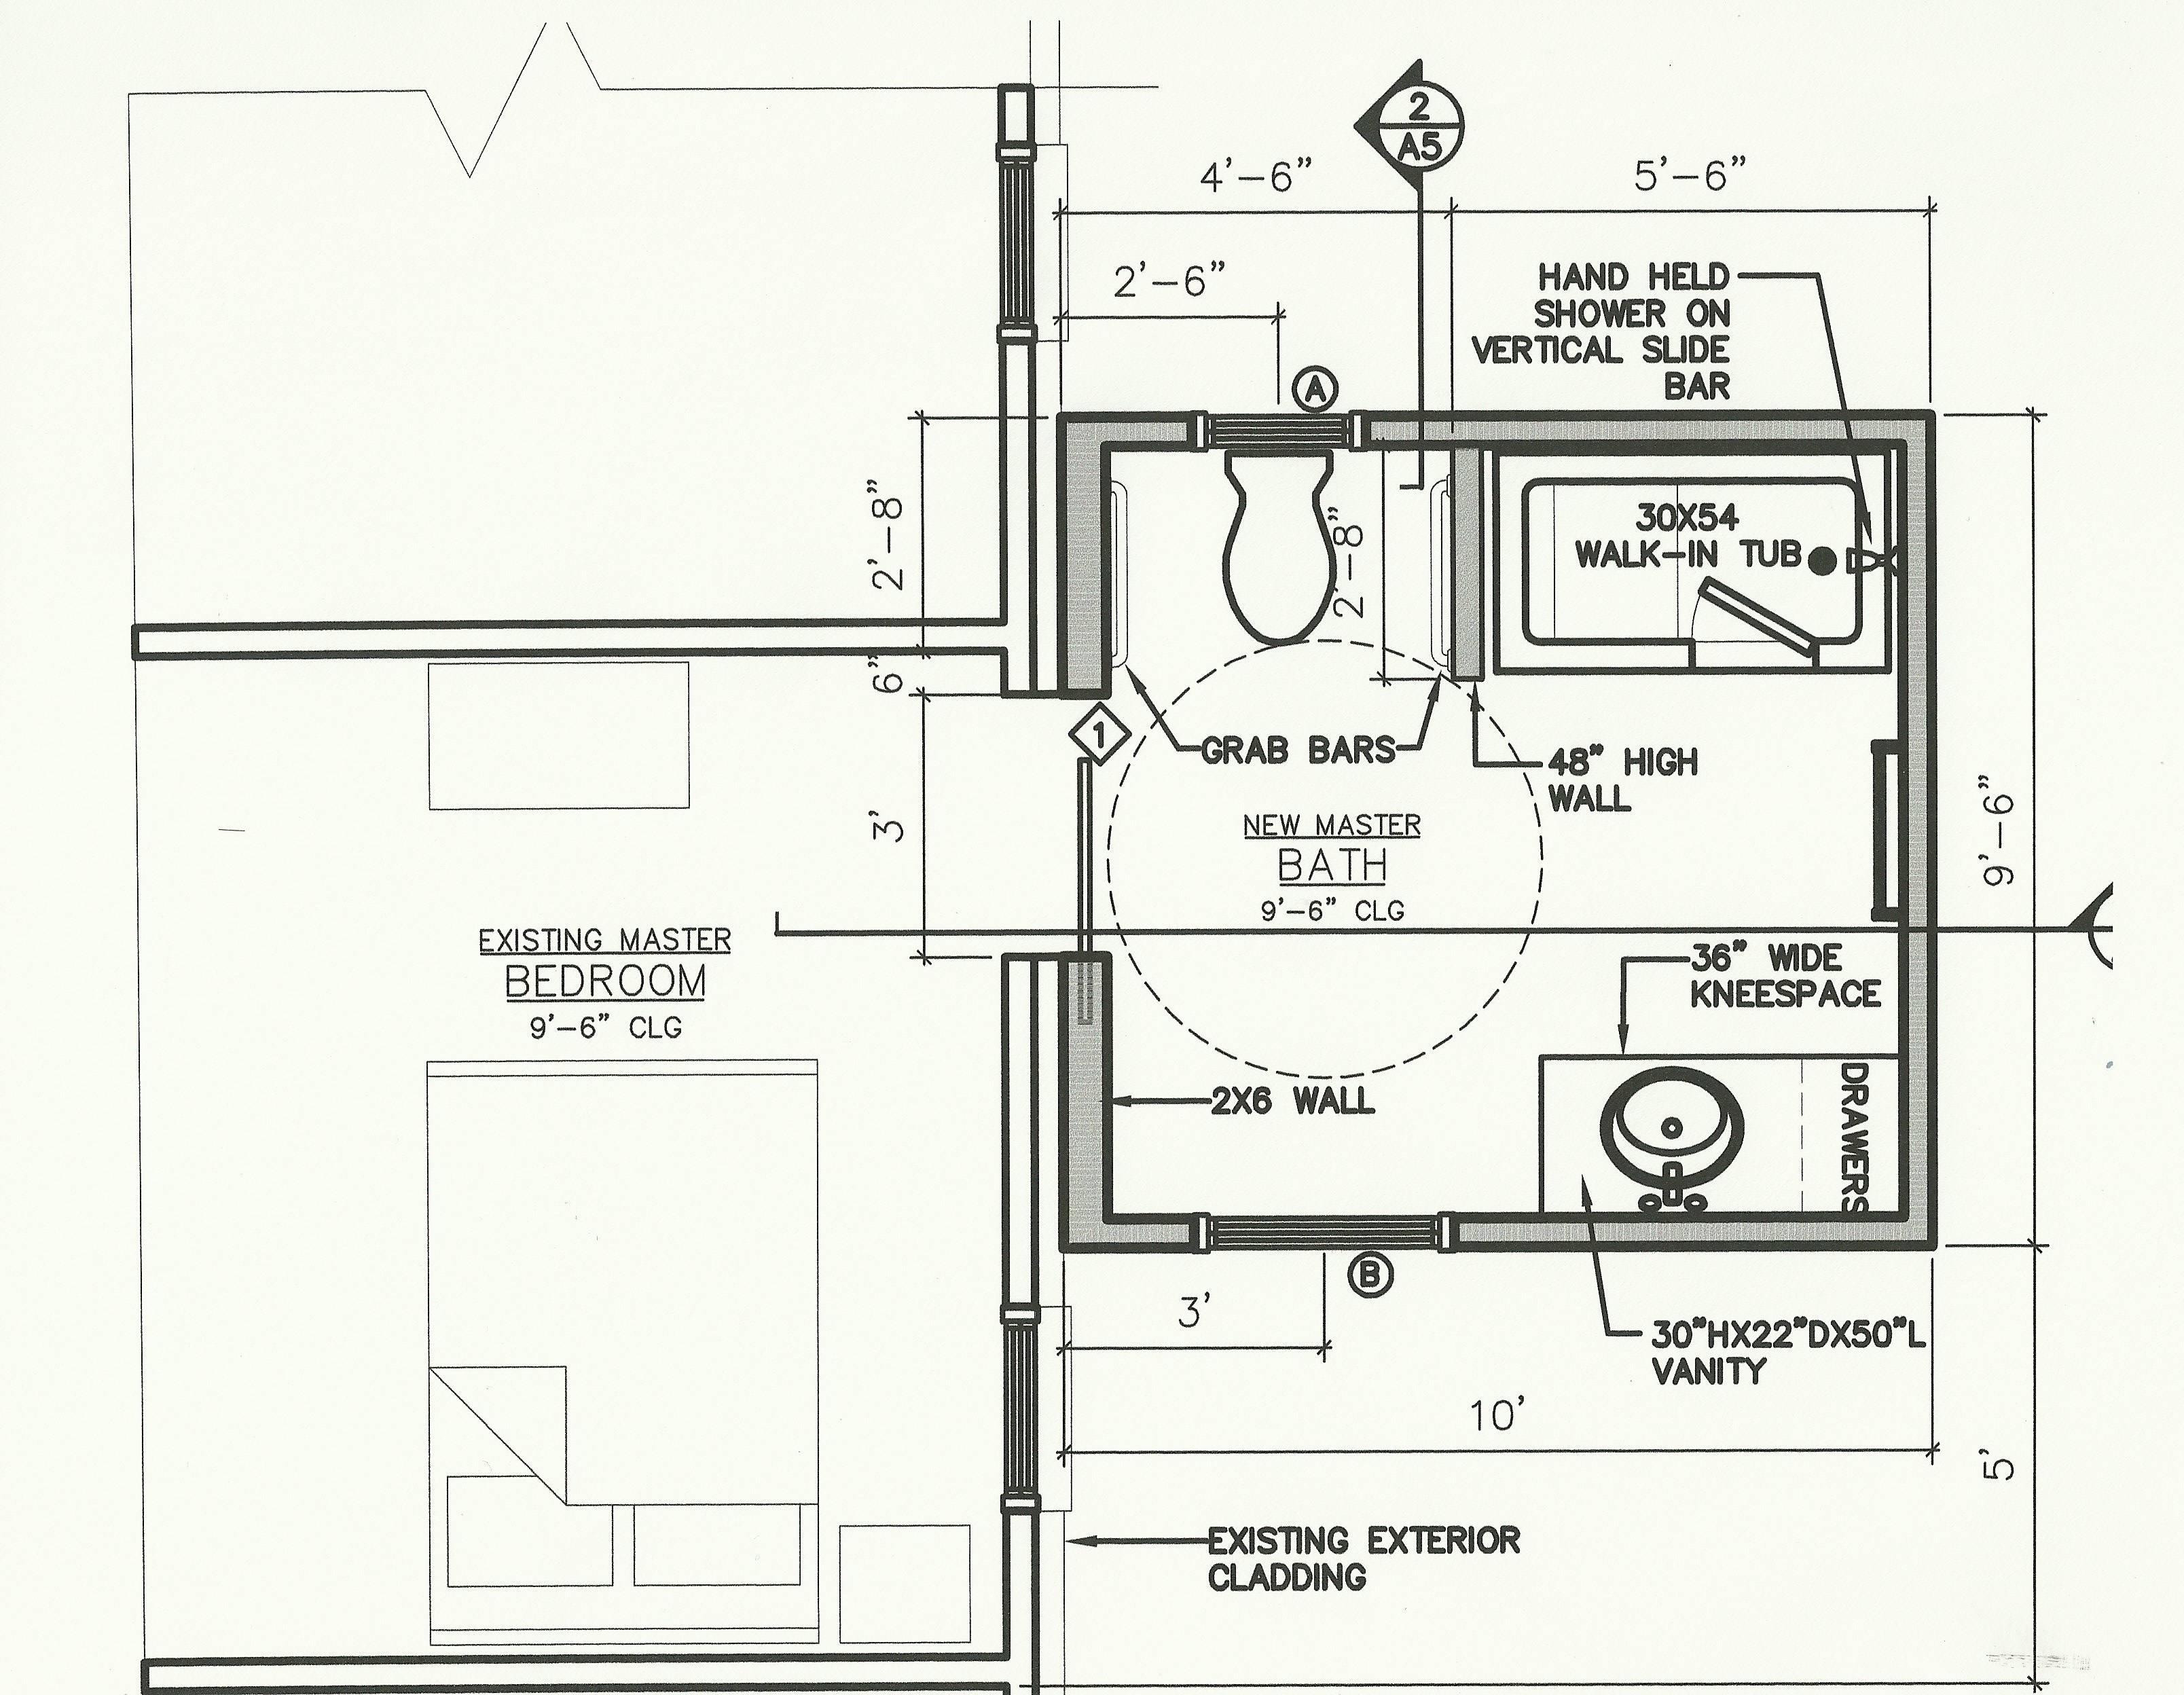 Residential Ada Bathroom Floor Plans Quotes House Plans 12280